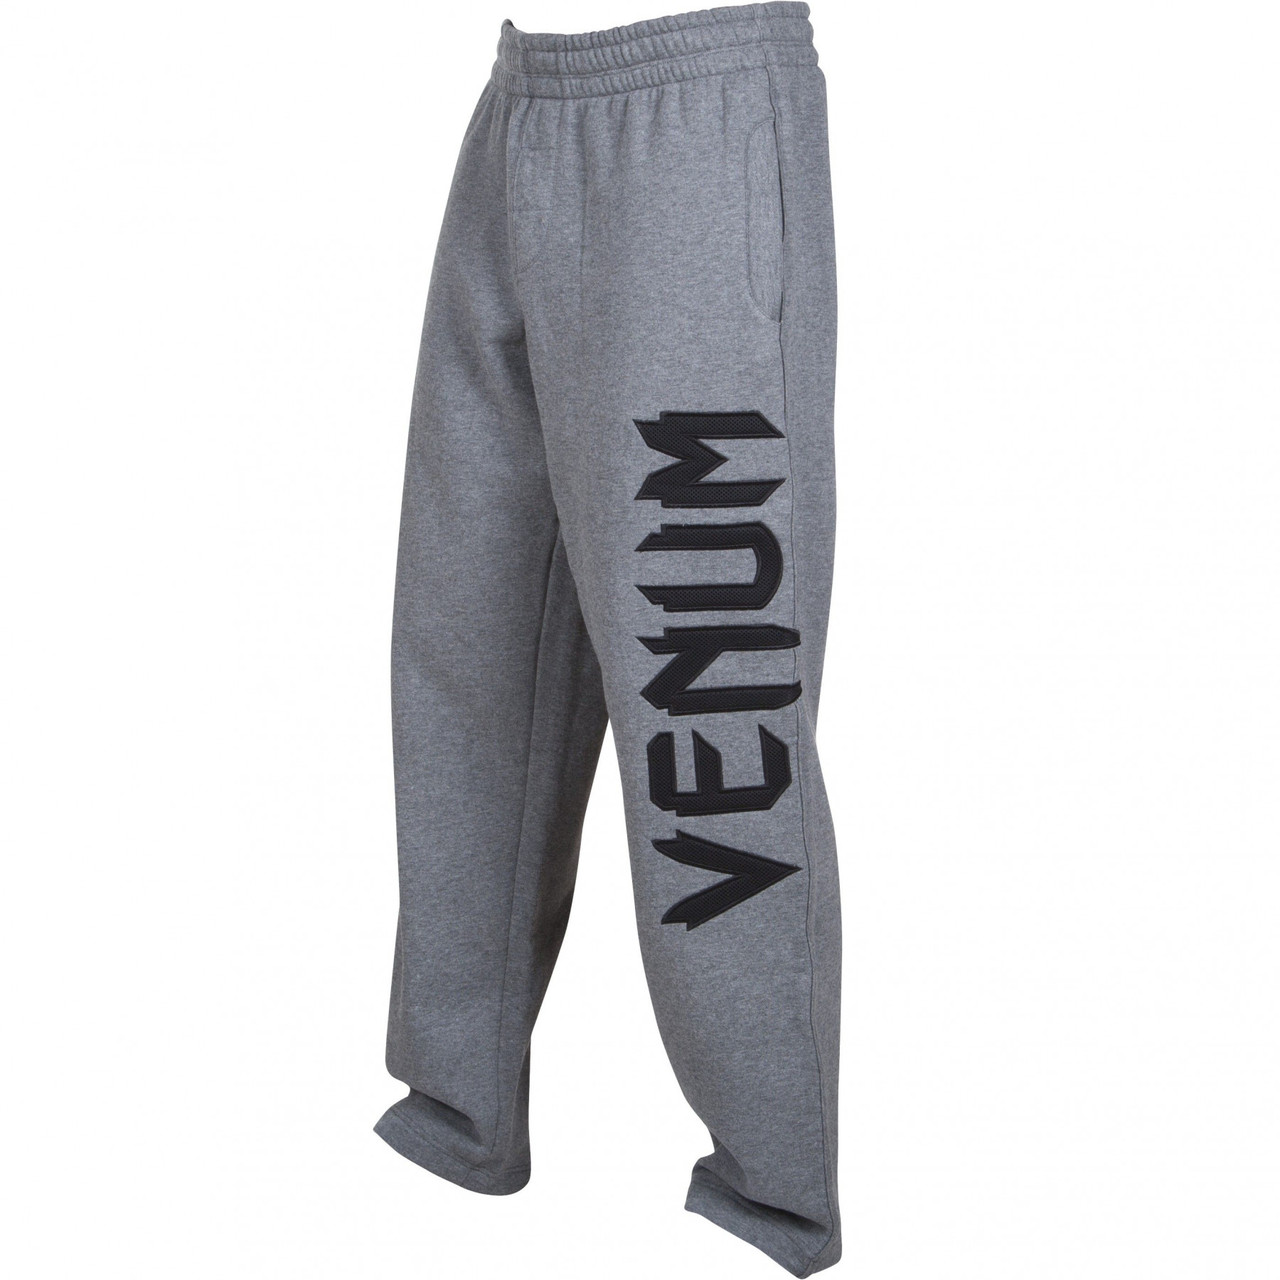 Спортивные штаны Venum GIANT 2.0 Grey M